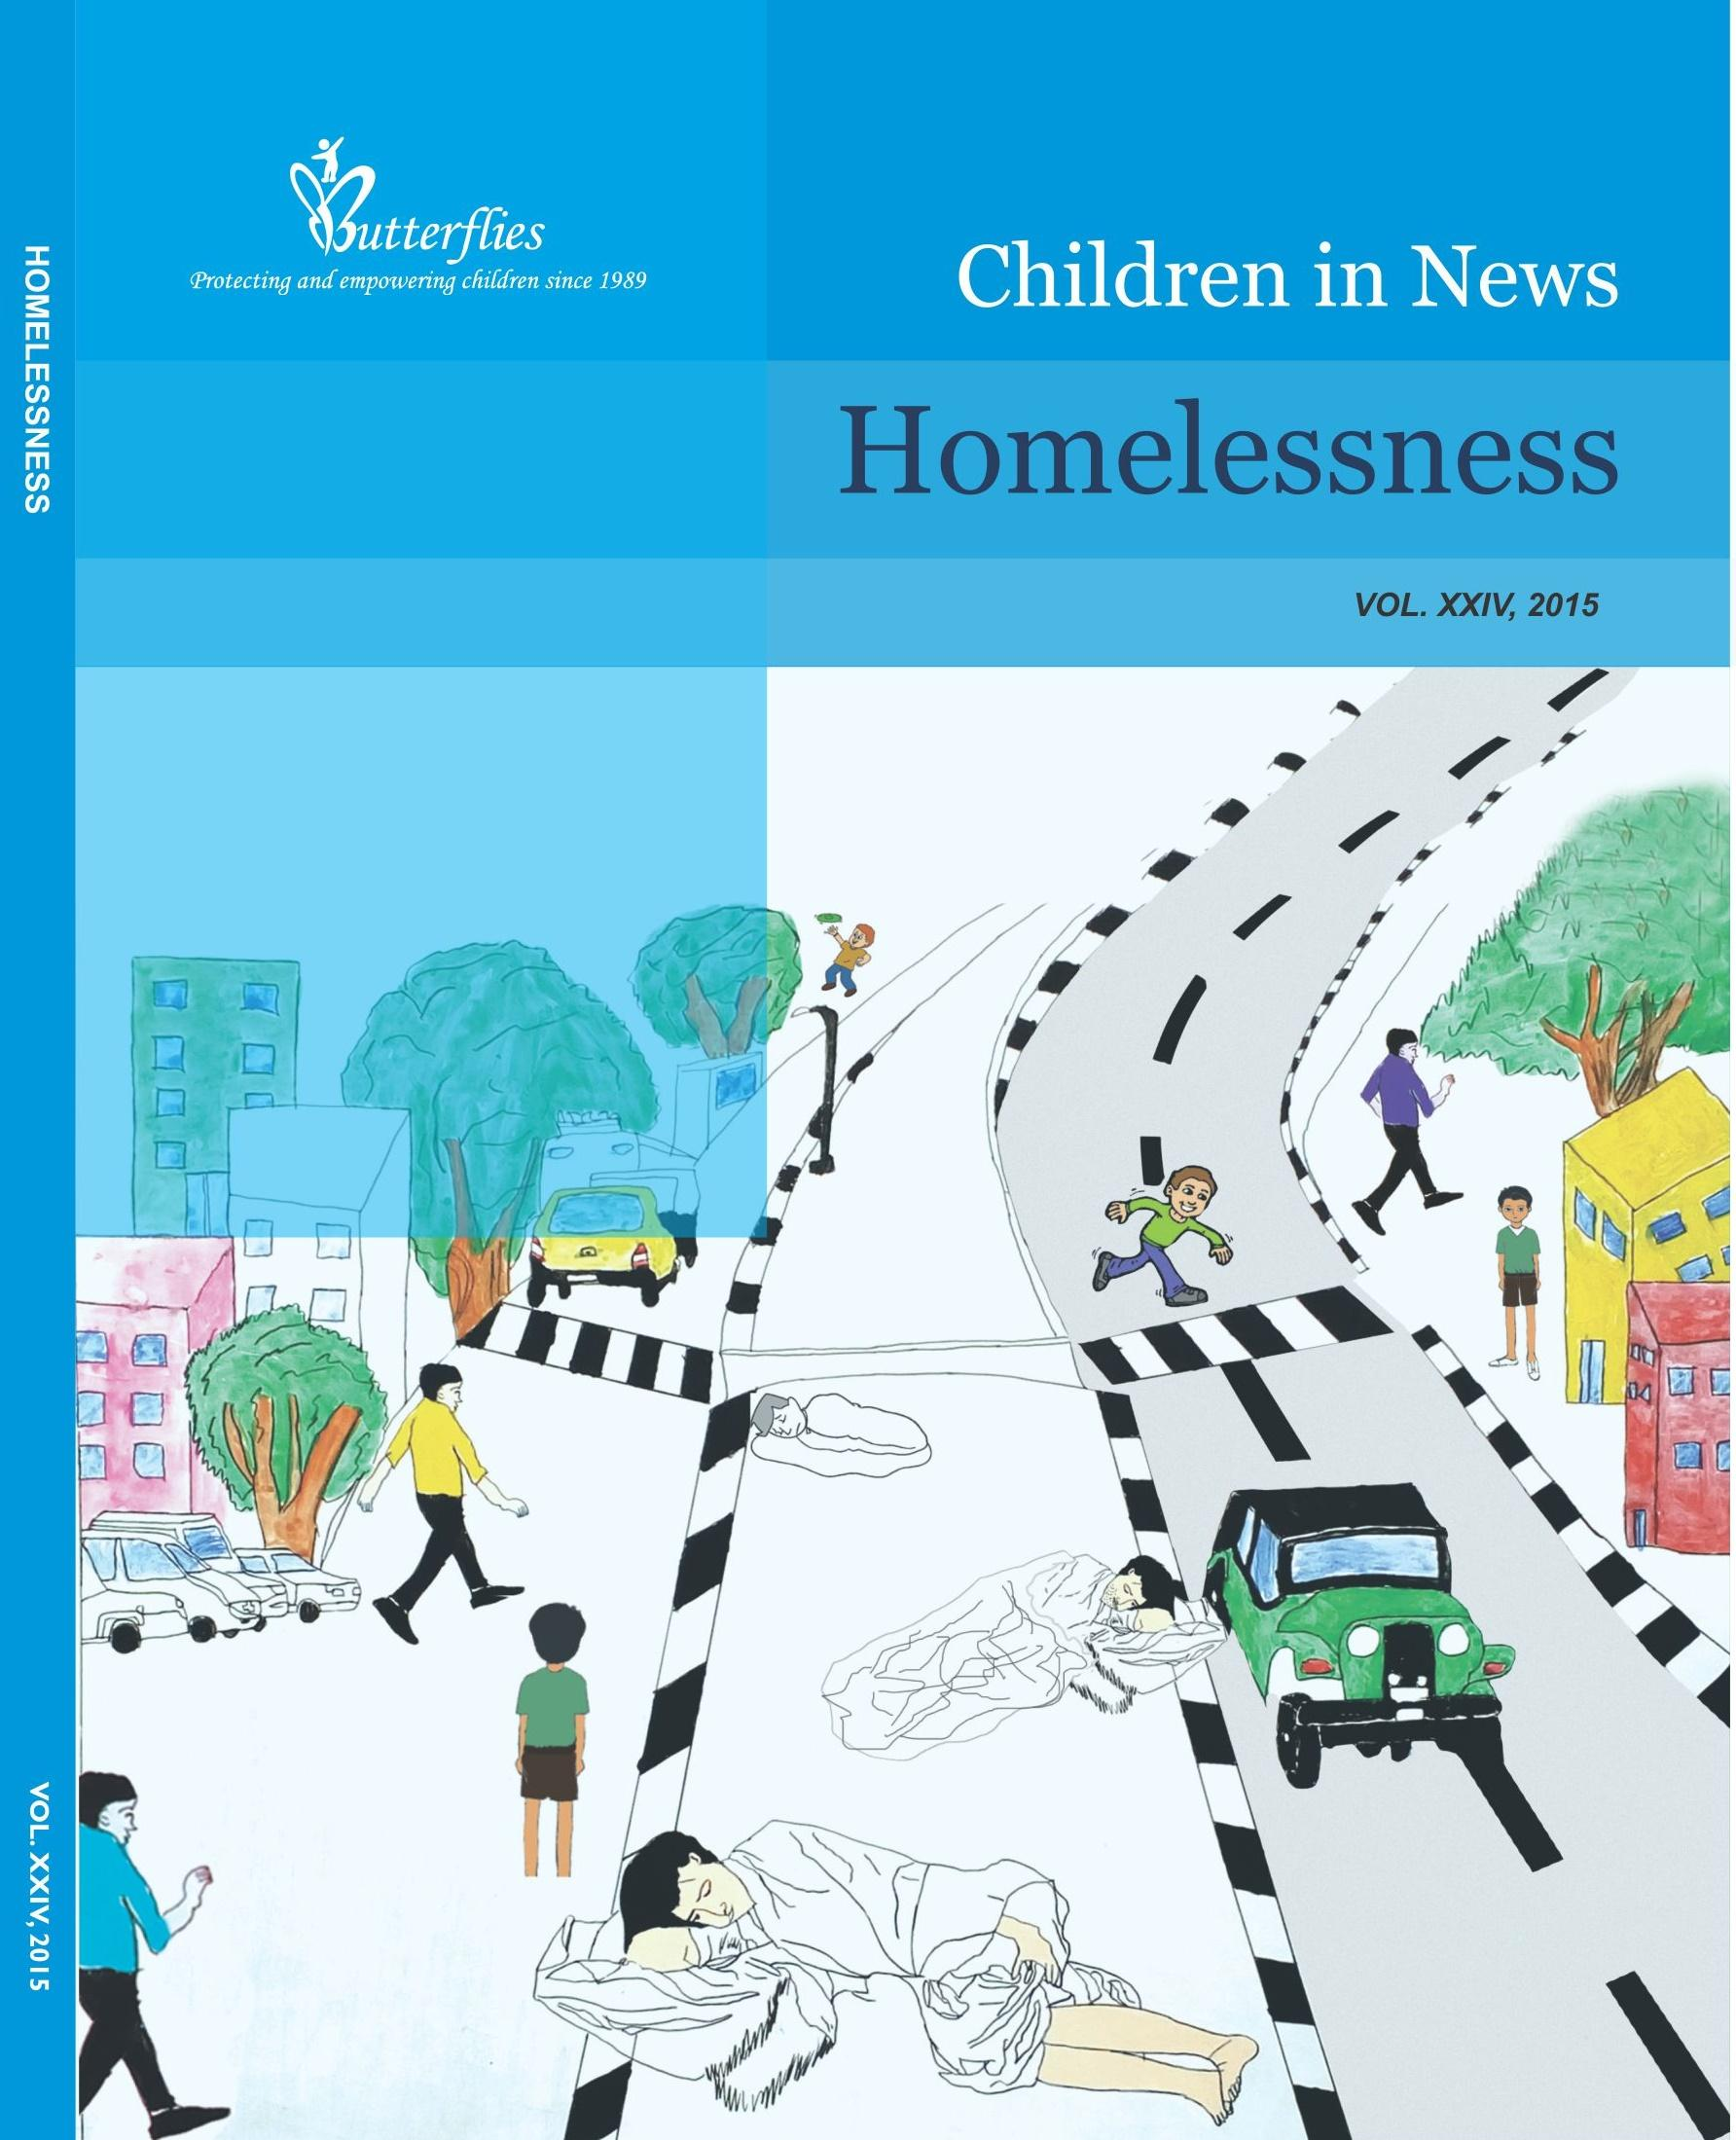 Children In News, Vol. XXIV, 2015